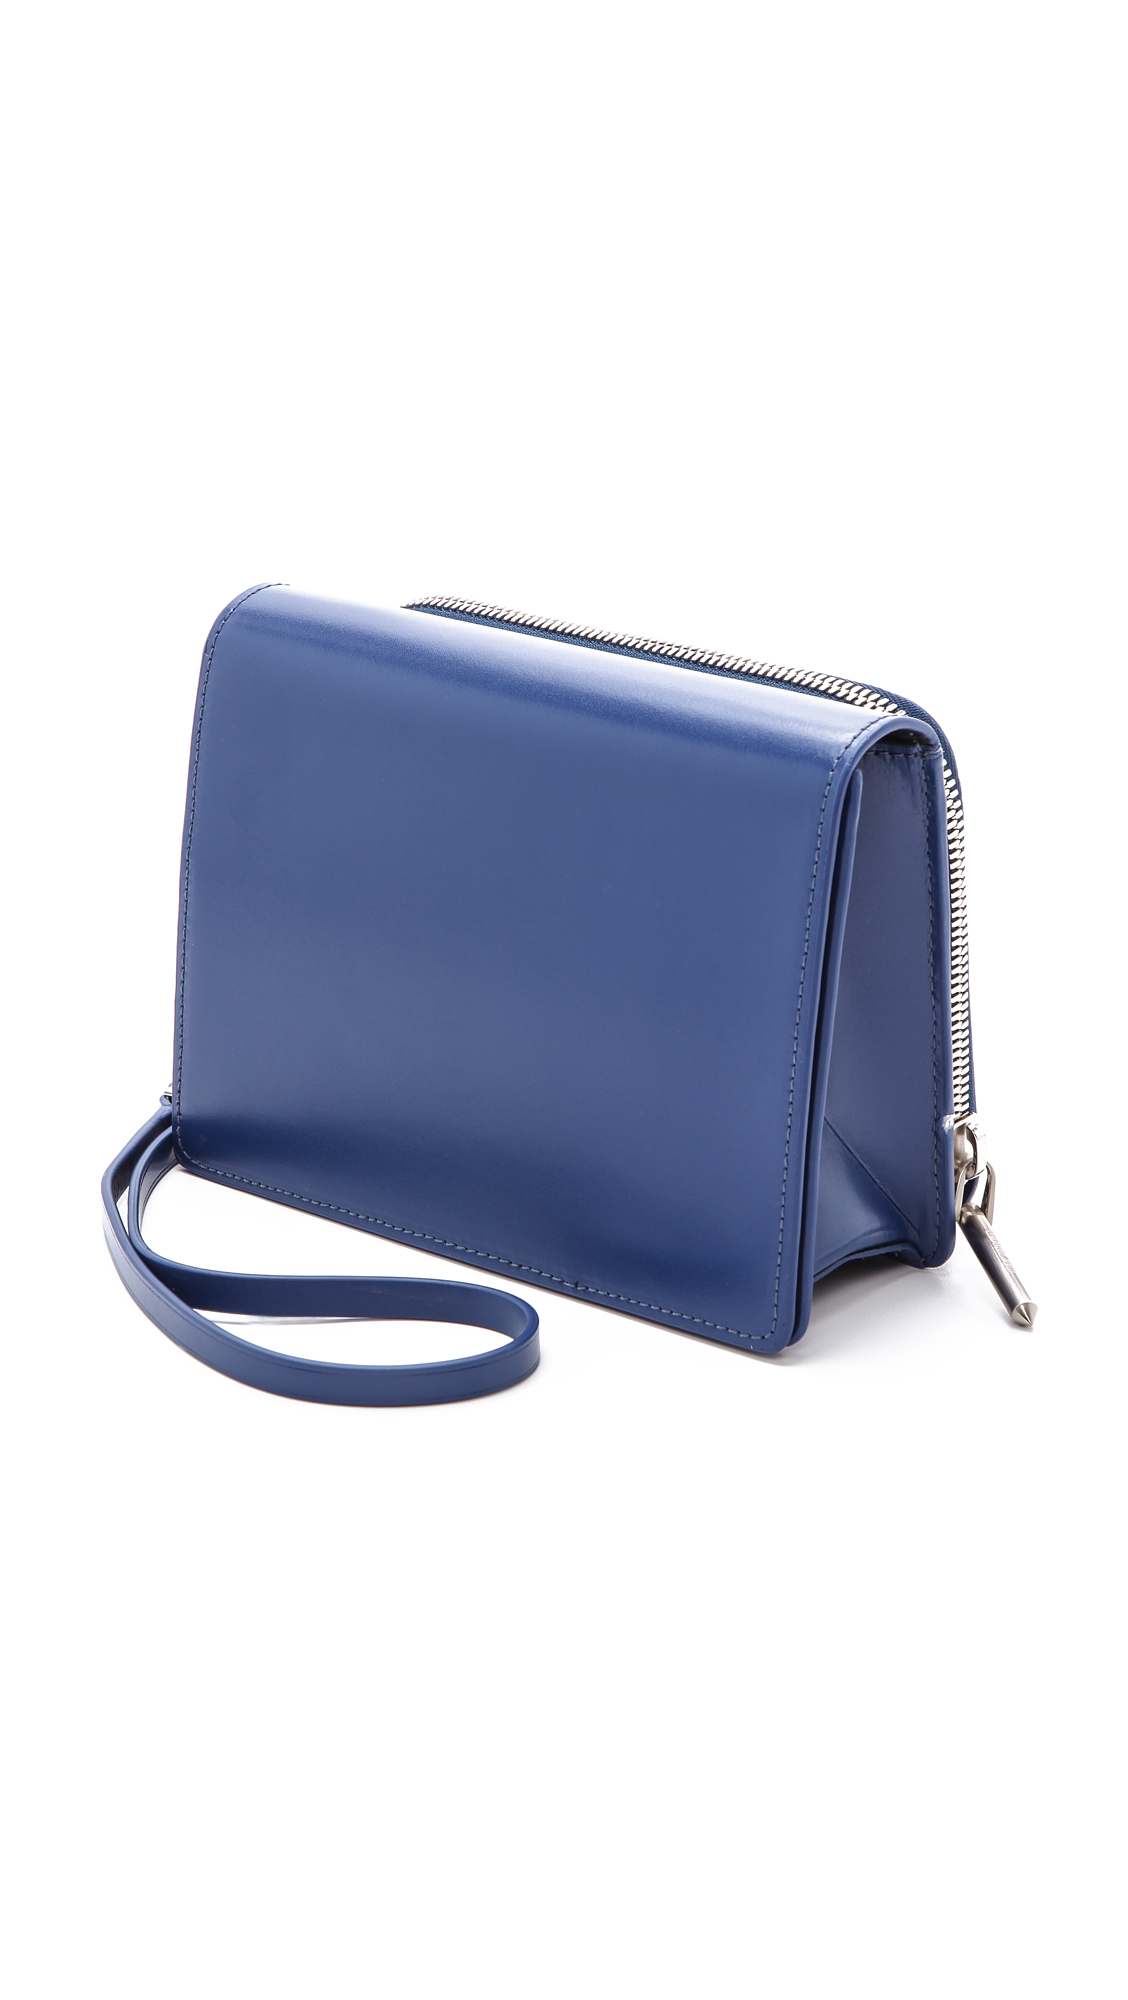 Helmut lang Vitreo Osfa Small Sling Bag Blue in Blue | Lyst